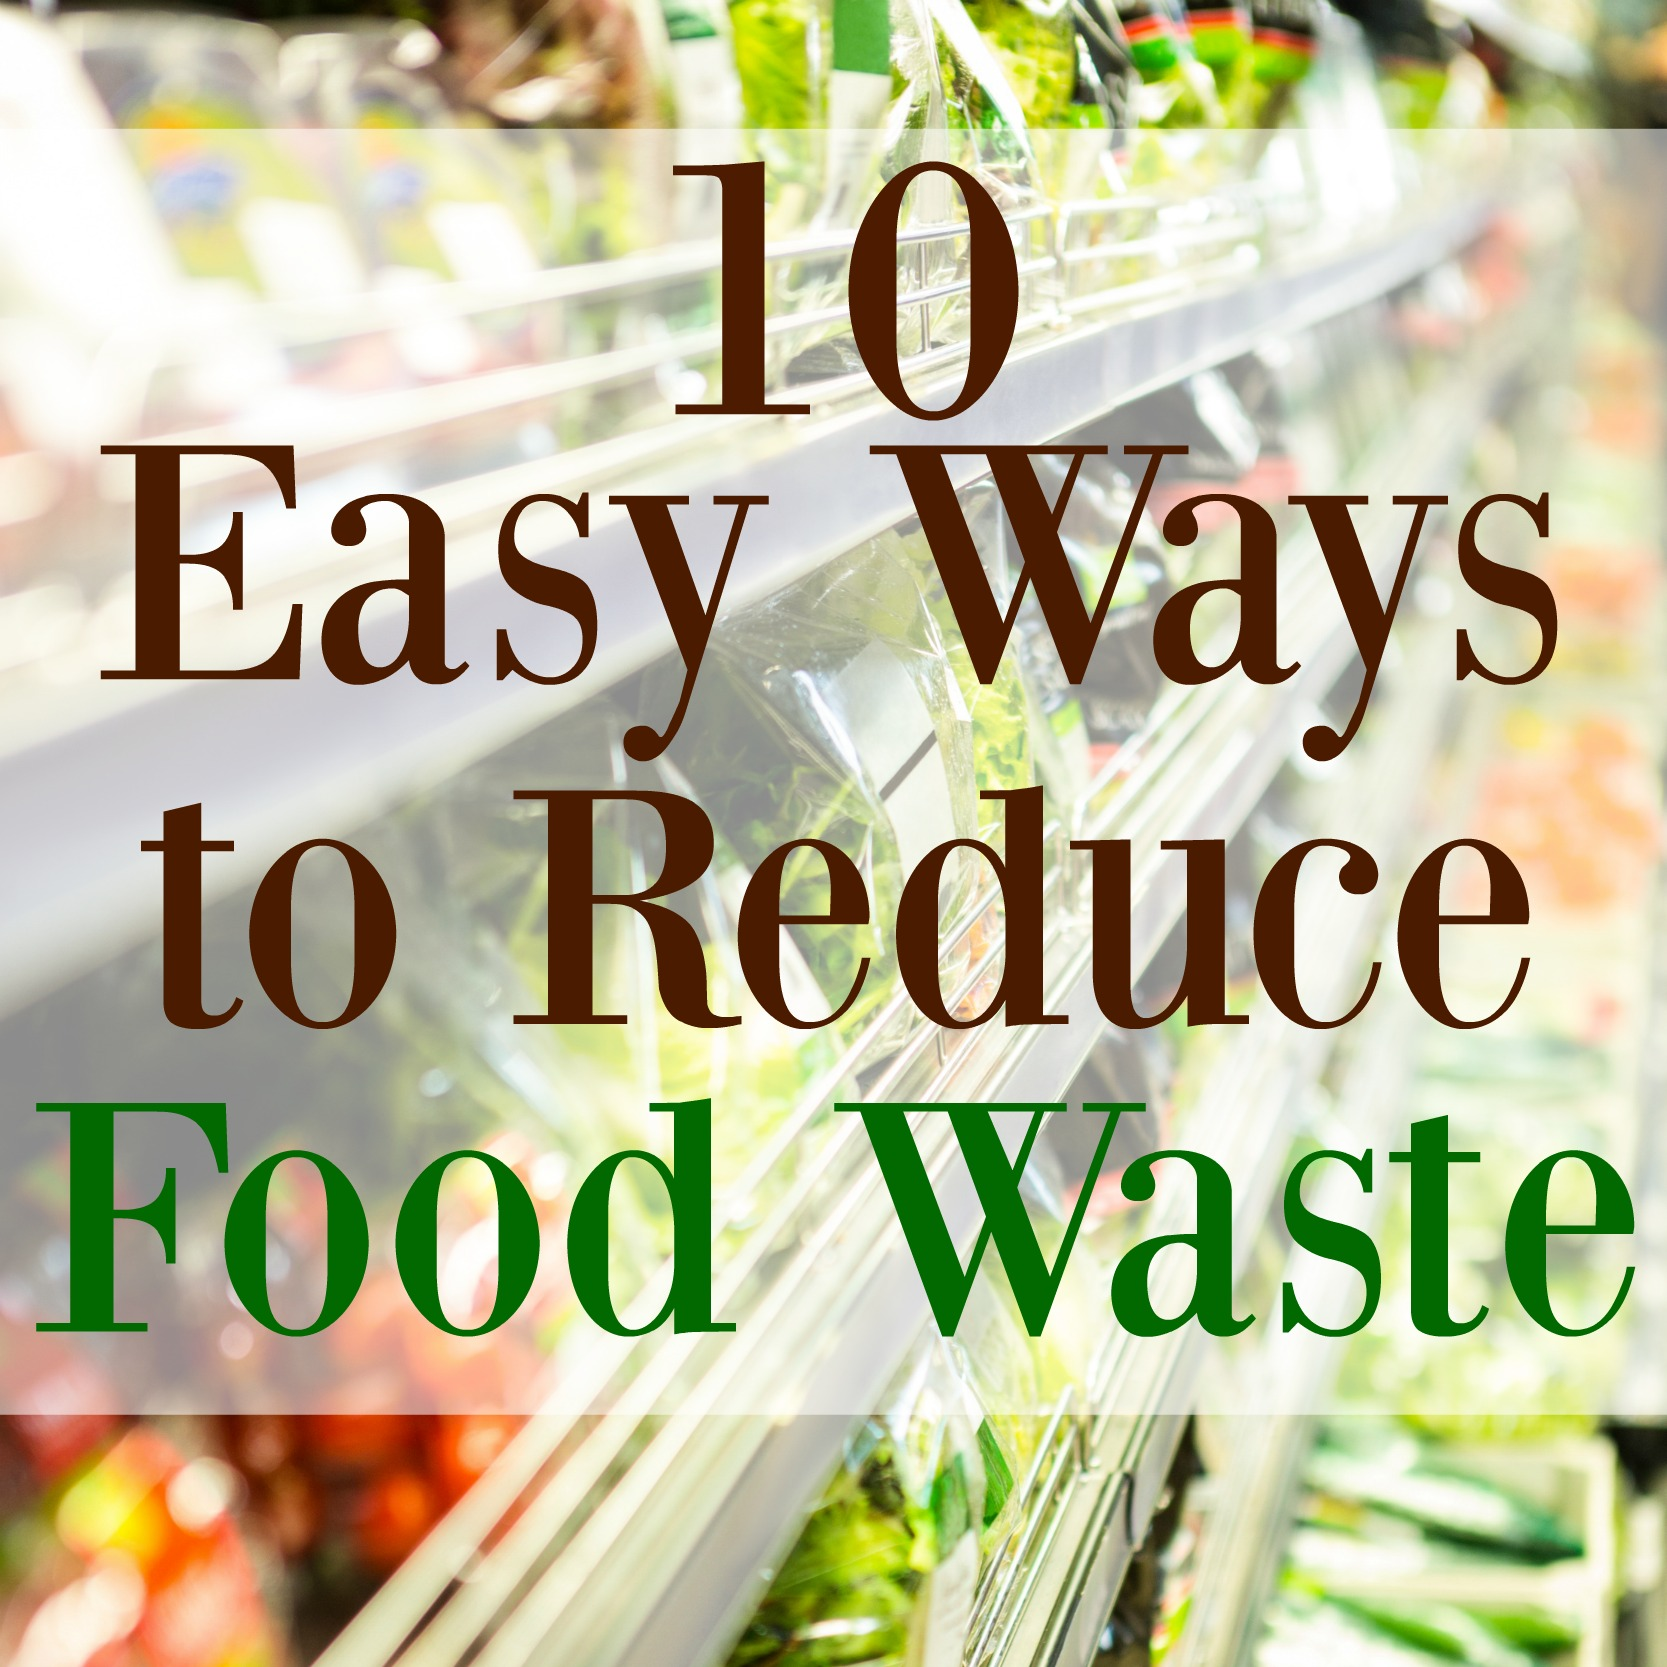 Recipes To Reduce Food Waste